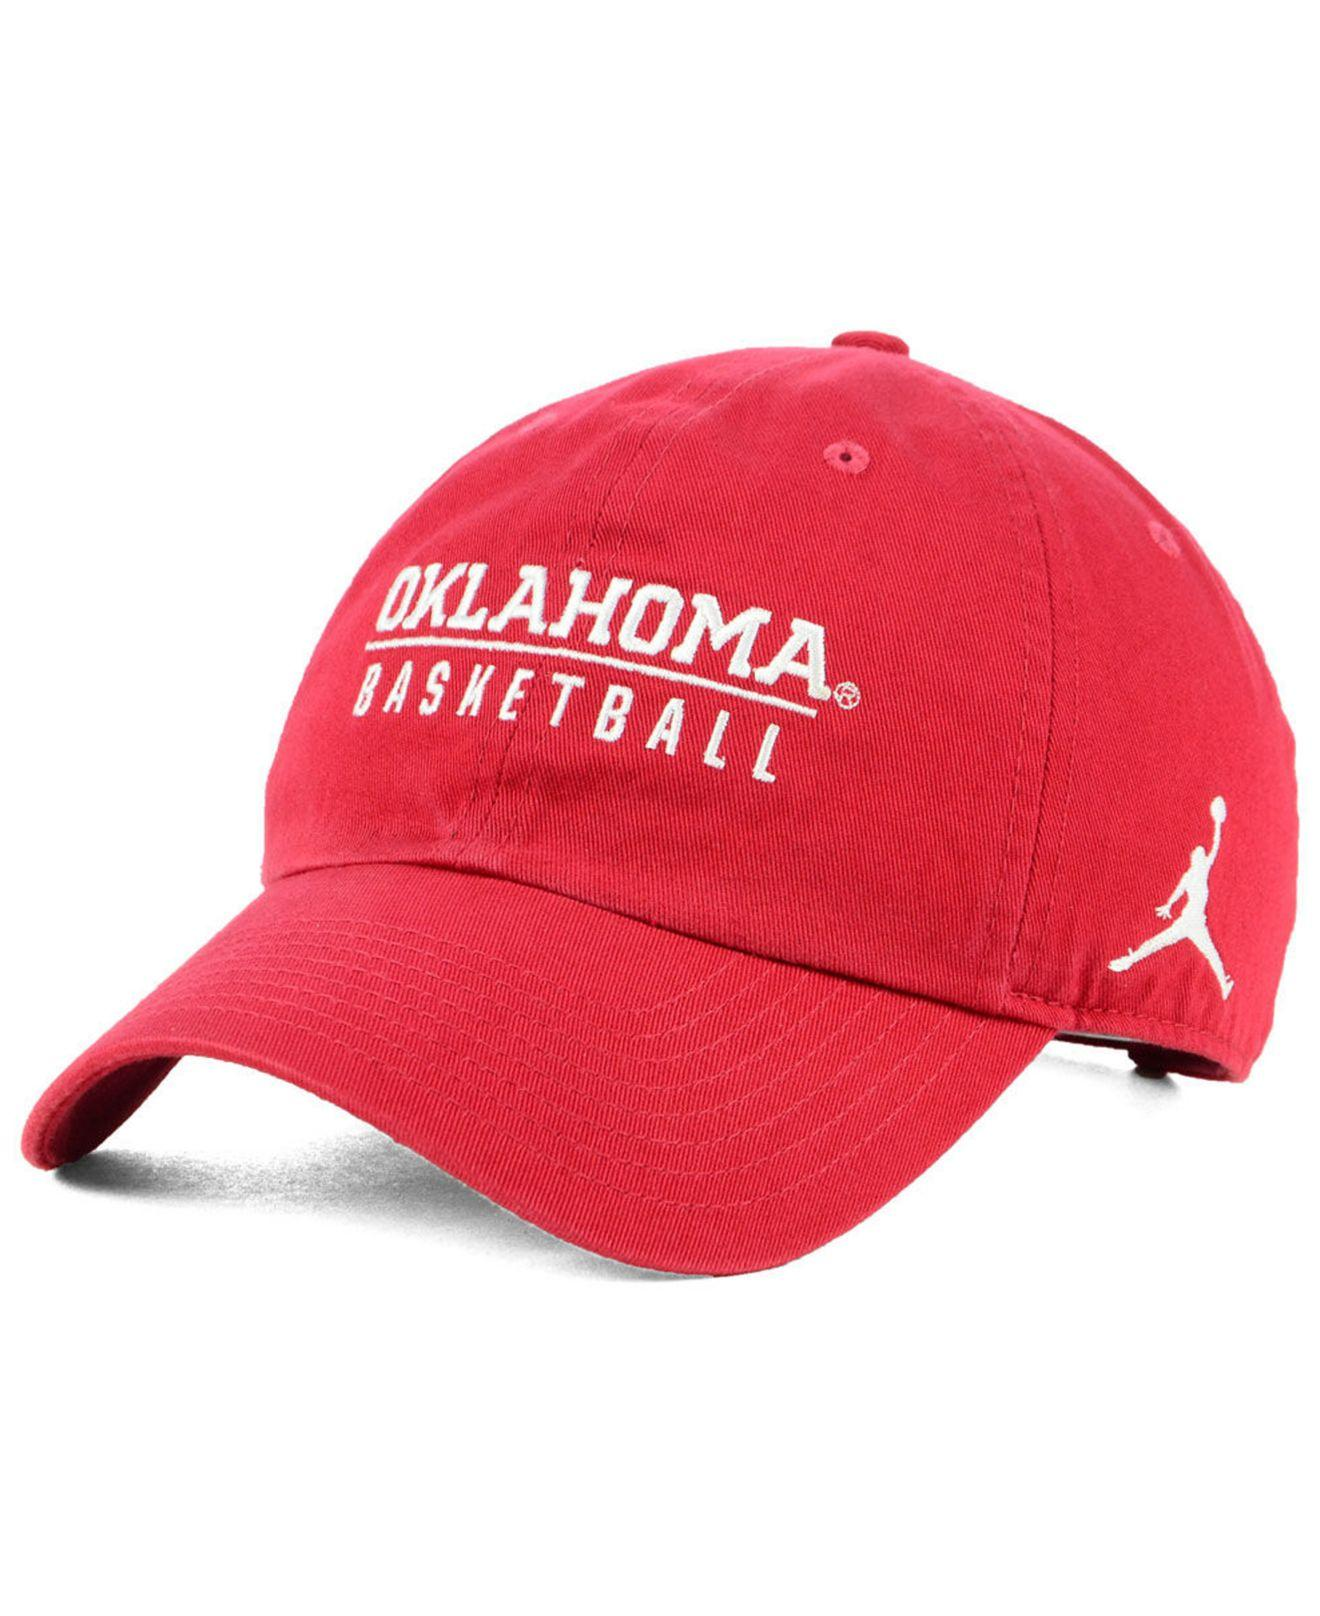 3d30a324c02c Lyst - Nike Oklahoma Sooners Campus Sport Strapback Cap in Red for Men